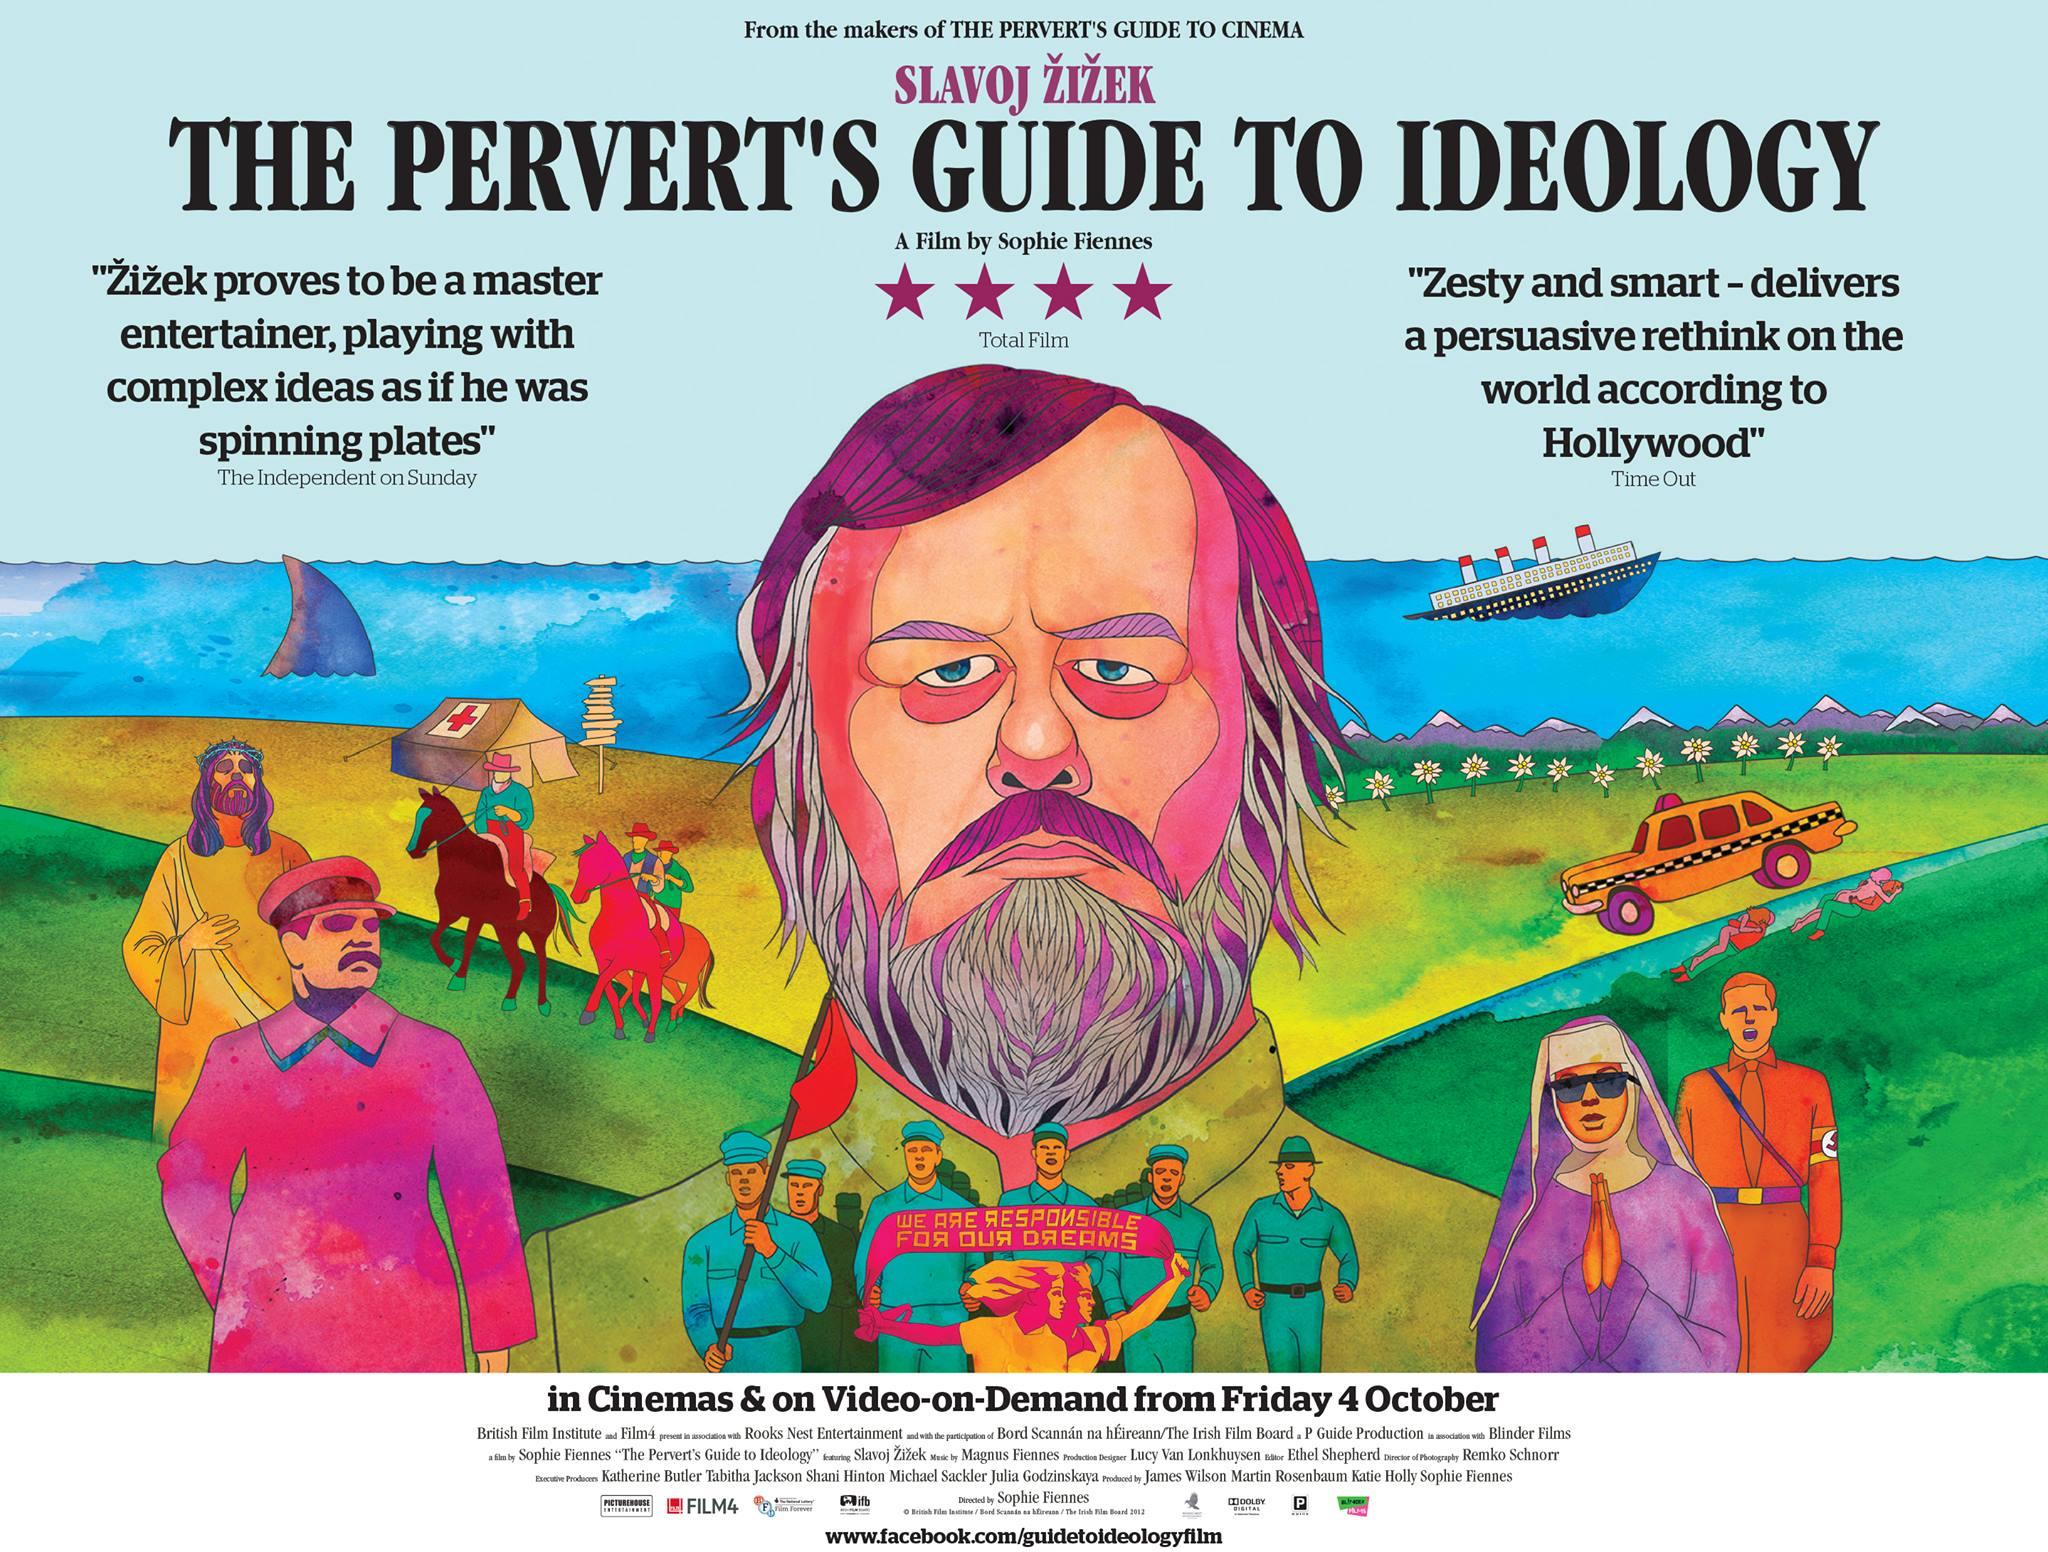 The Pervert's Guide to Ideology (transcript/subtitles)